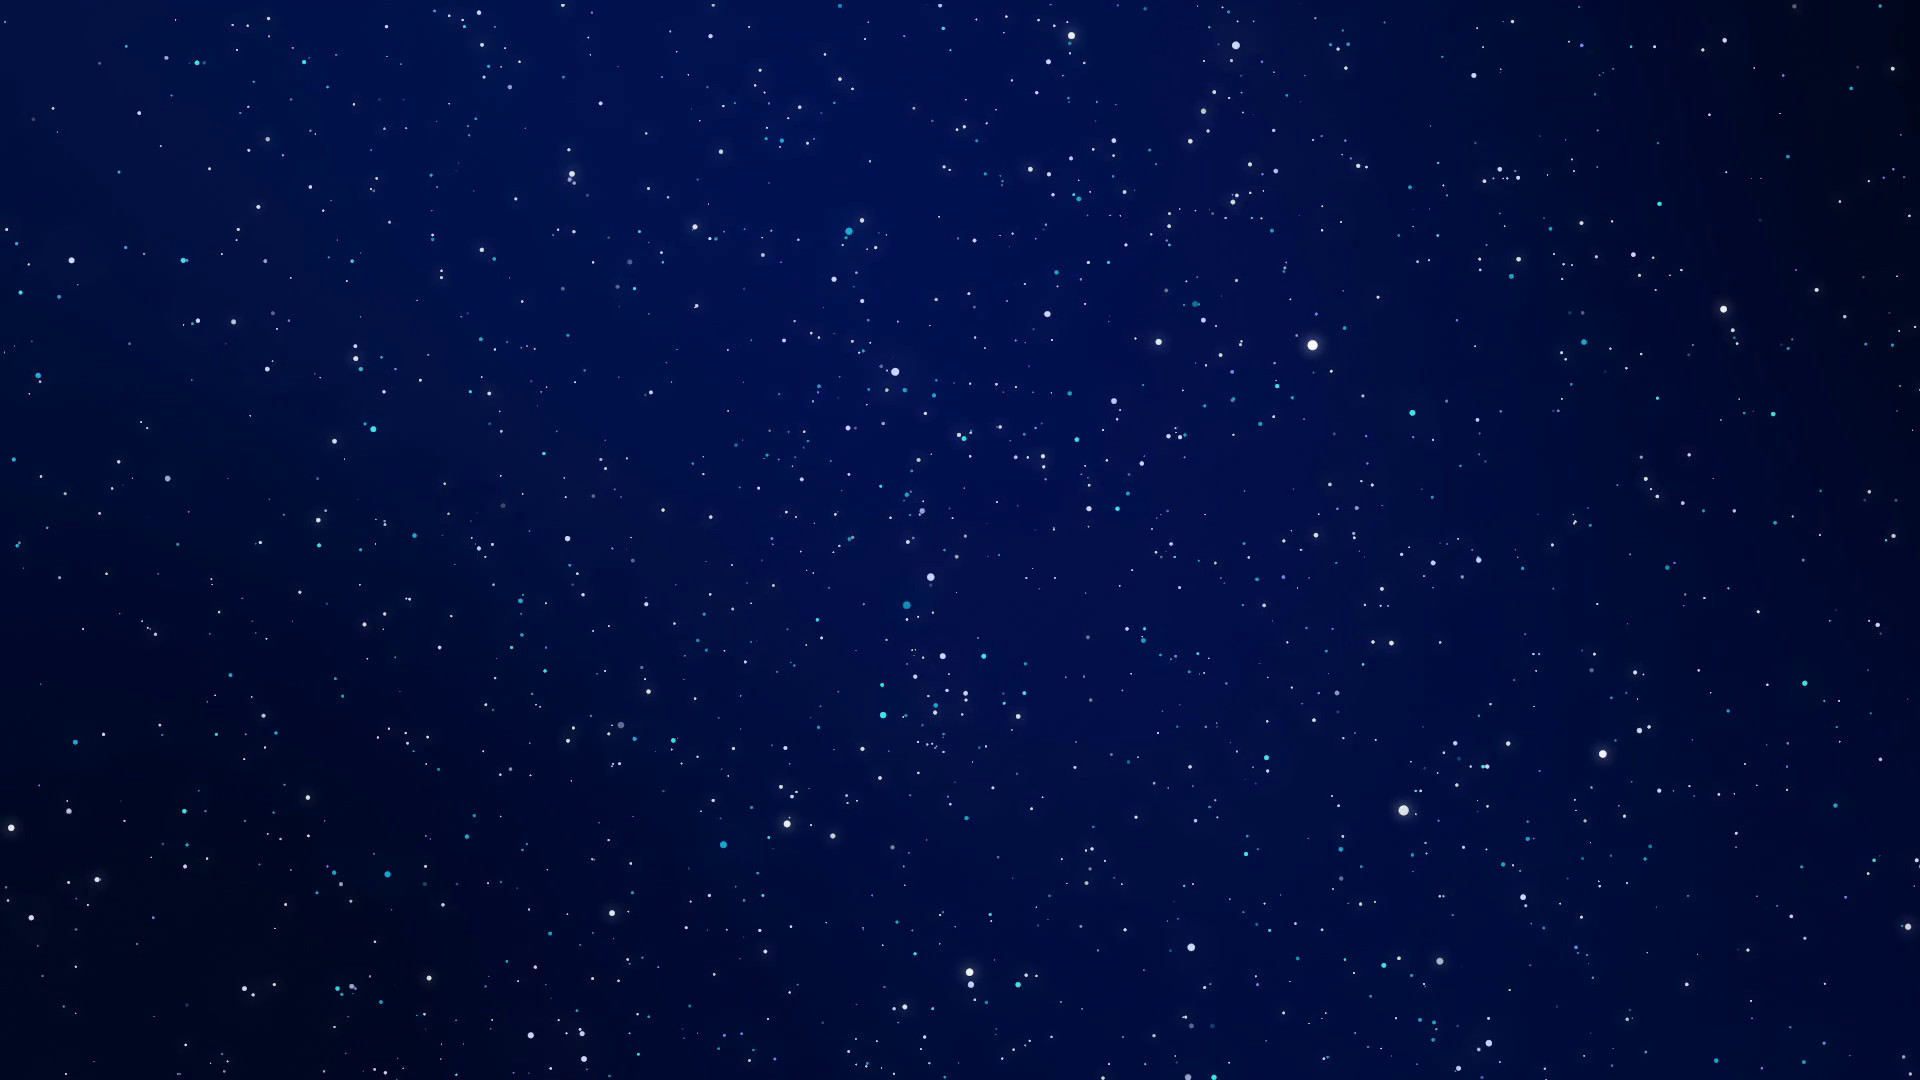 Night Sky Stars Background Psdgraphics - HD 1920×1080